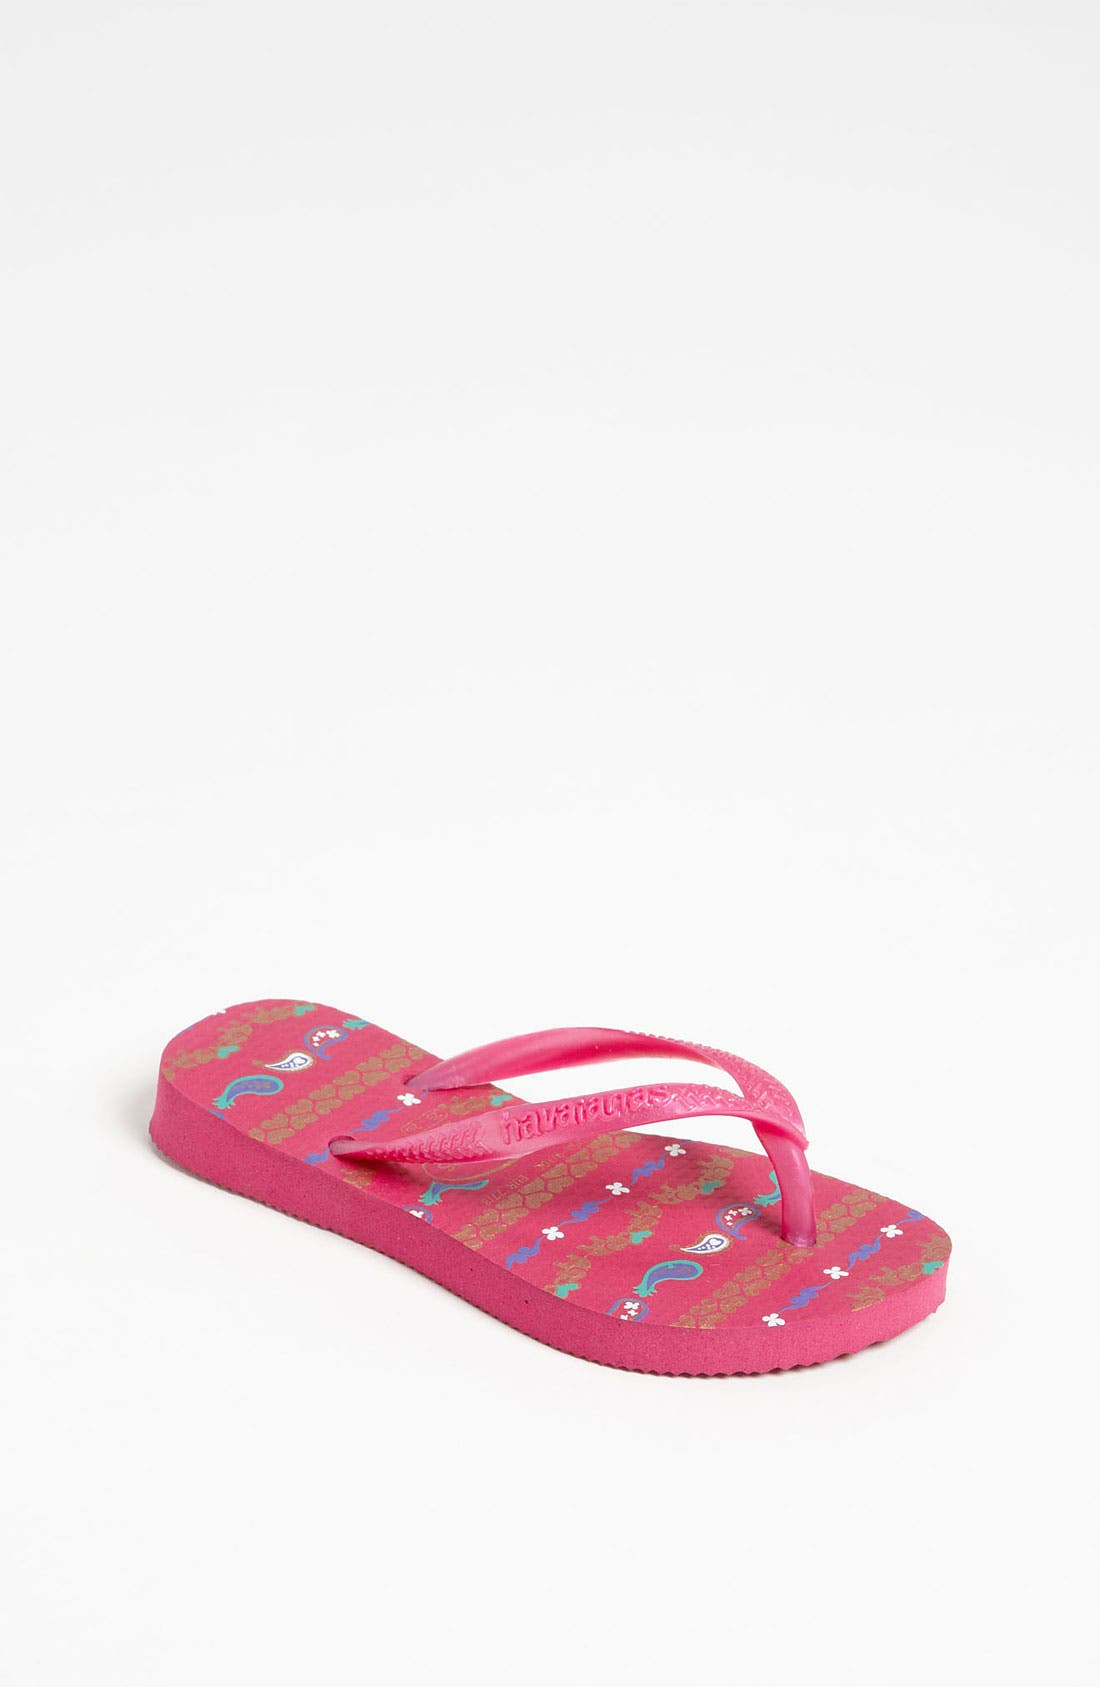 Main Image - Havaianas 'Slim Garden' Flip Flop (Toddler & Little Kid)